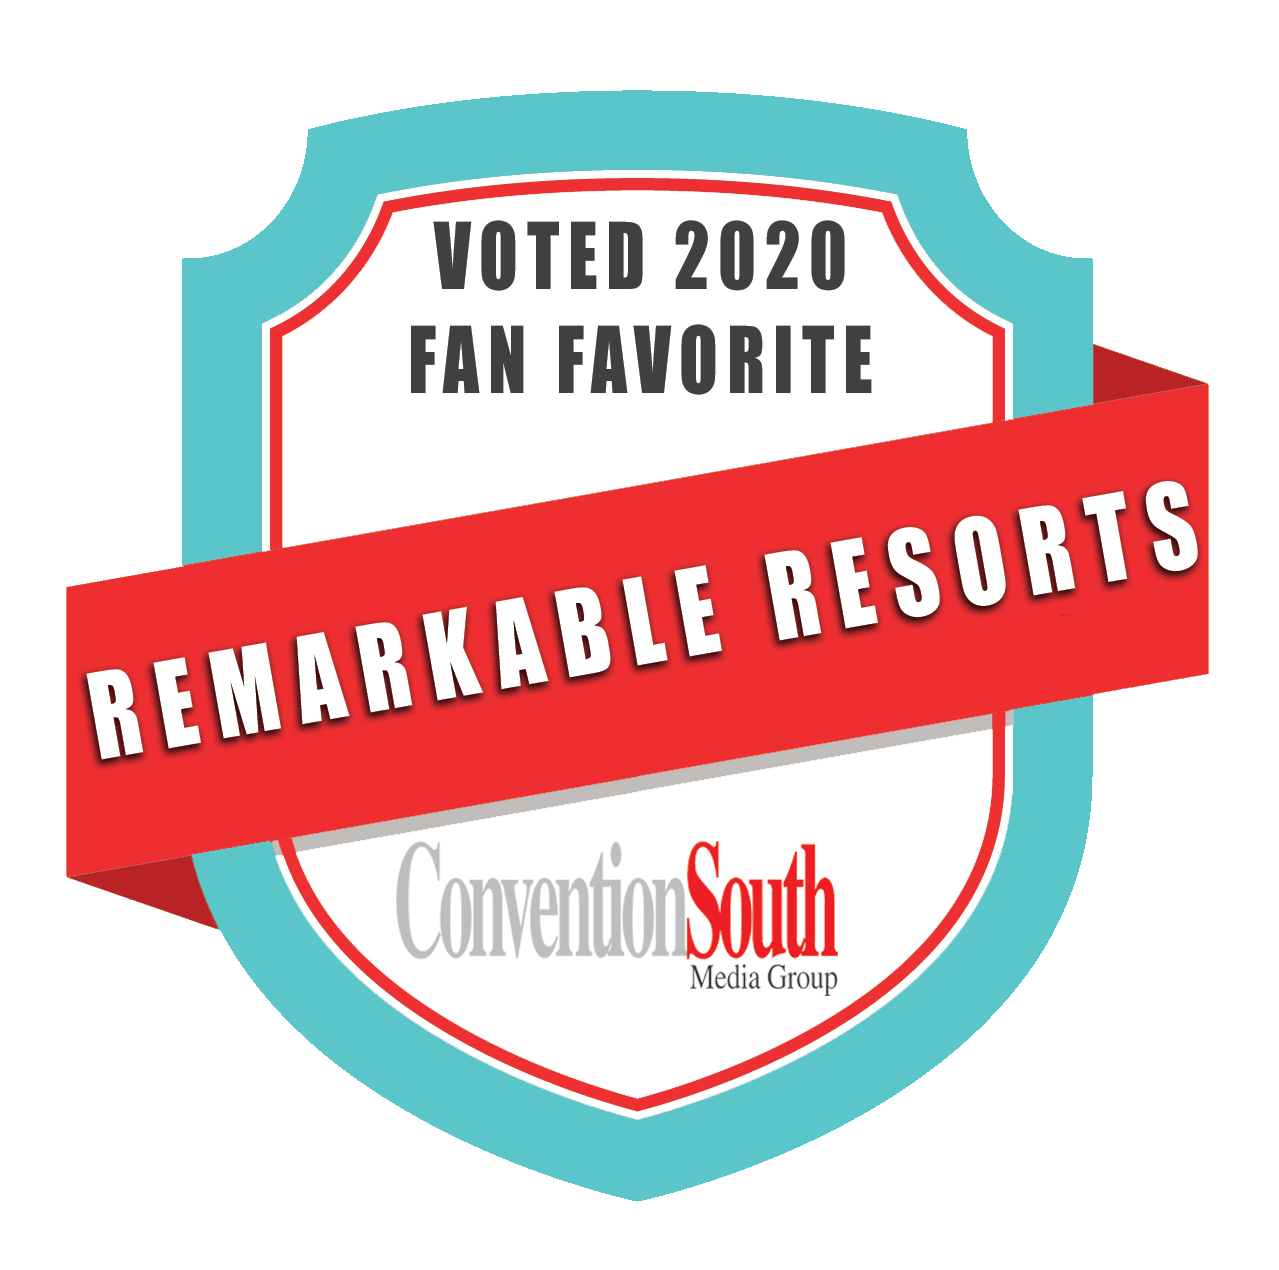 Convention South Remarkable Resort Award